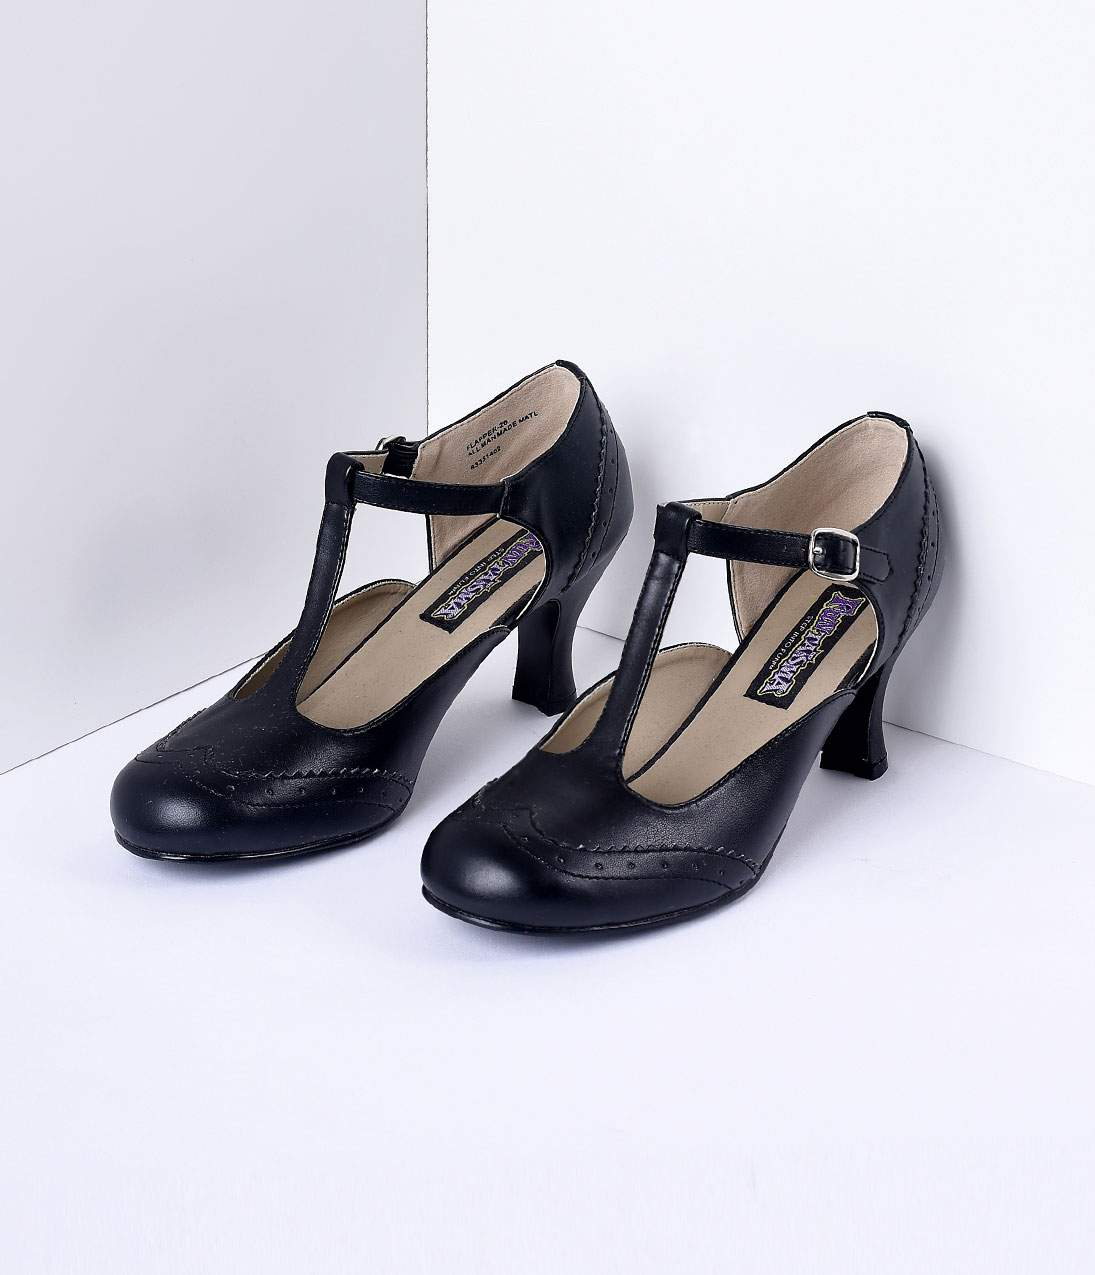 6b68c8c65f12 1930s Style Shoes – Art Deco Shoes Black T-Strap Mary Jane Kitten Heels   58.00